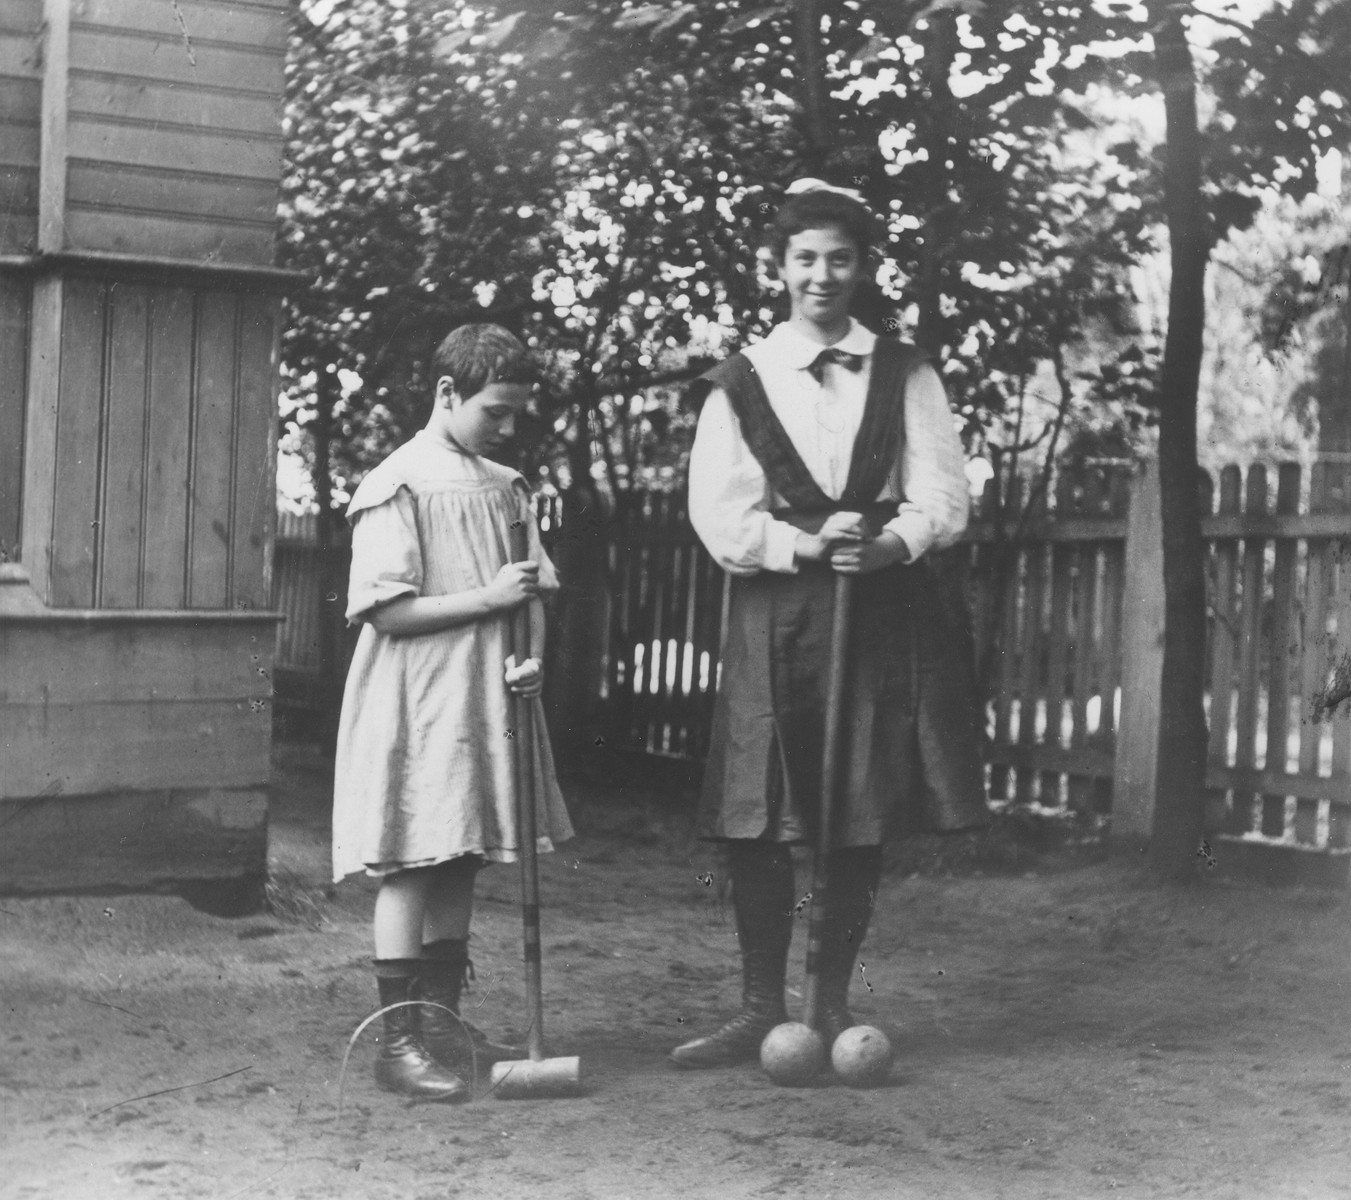 Anna and Emma (Emilia) Mikolaevsky at their dacha in the village of Strelna, a suburb of St. Petersburg.